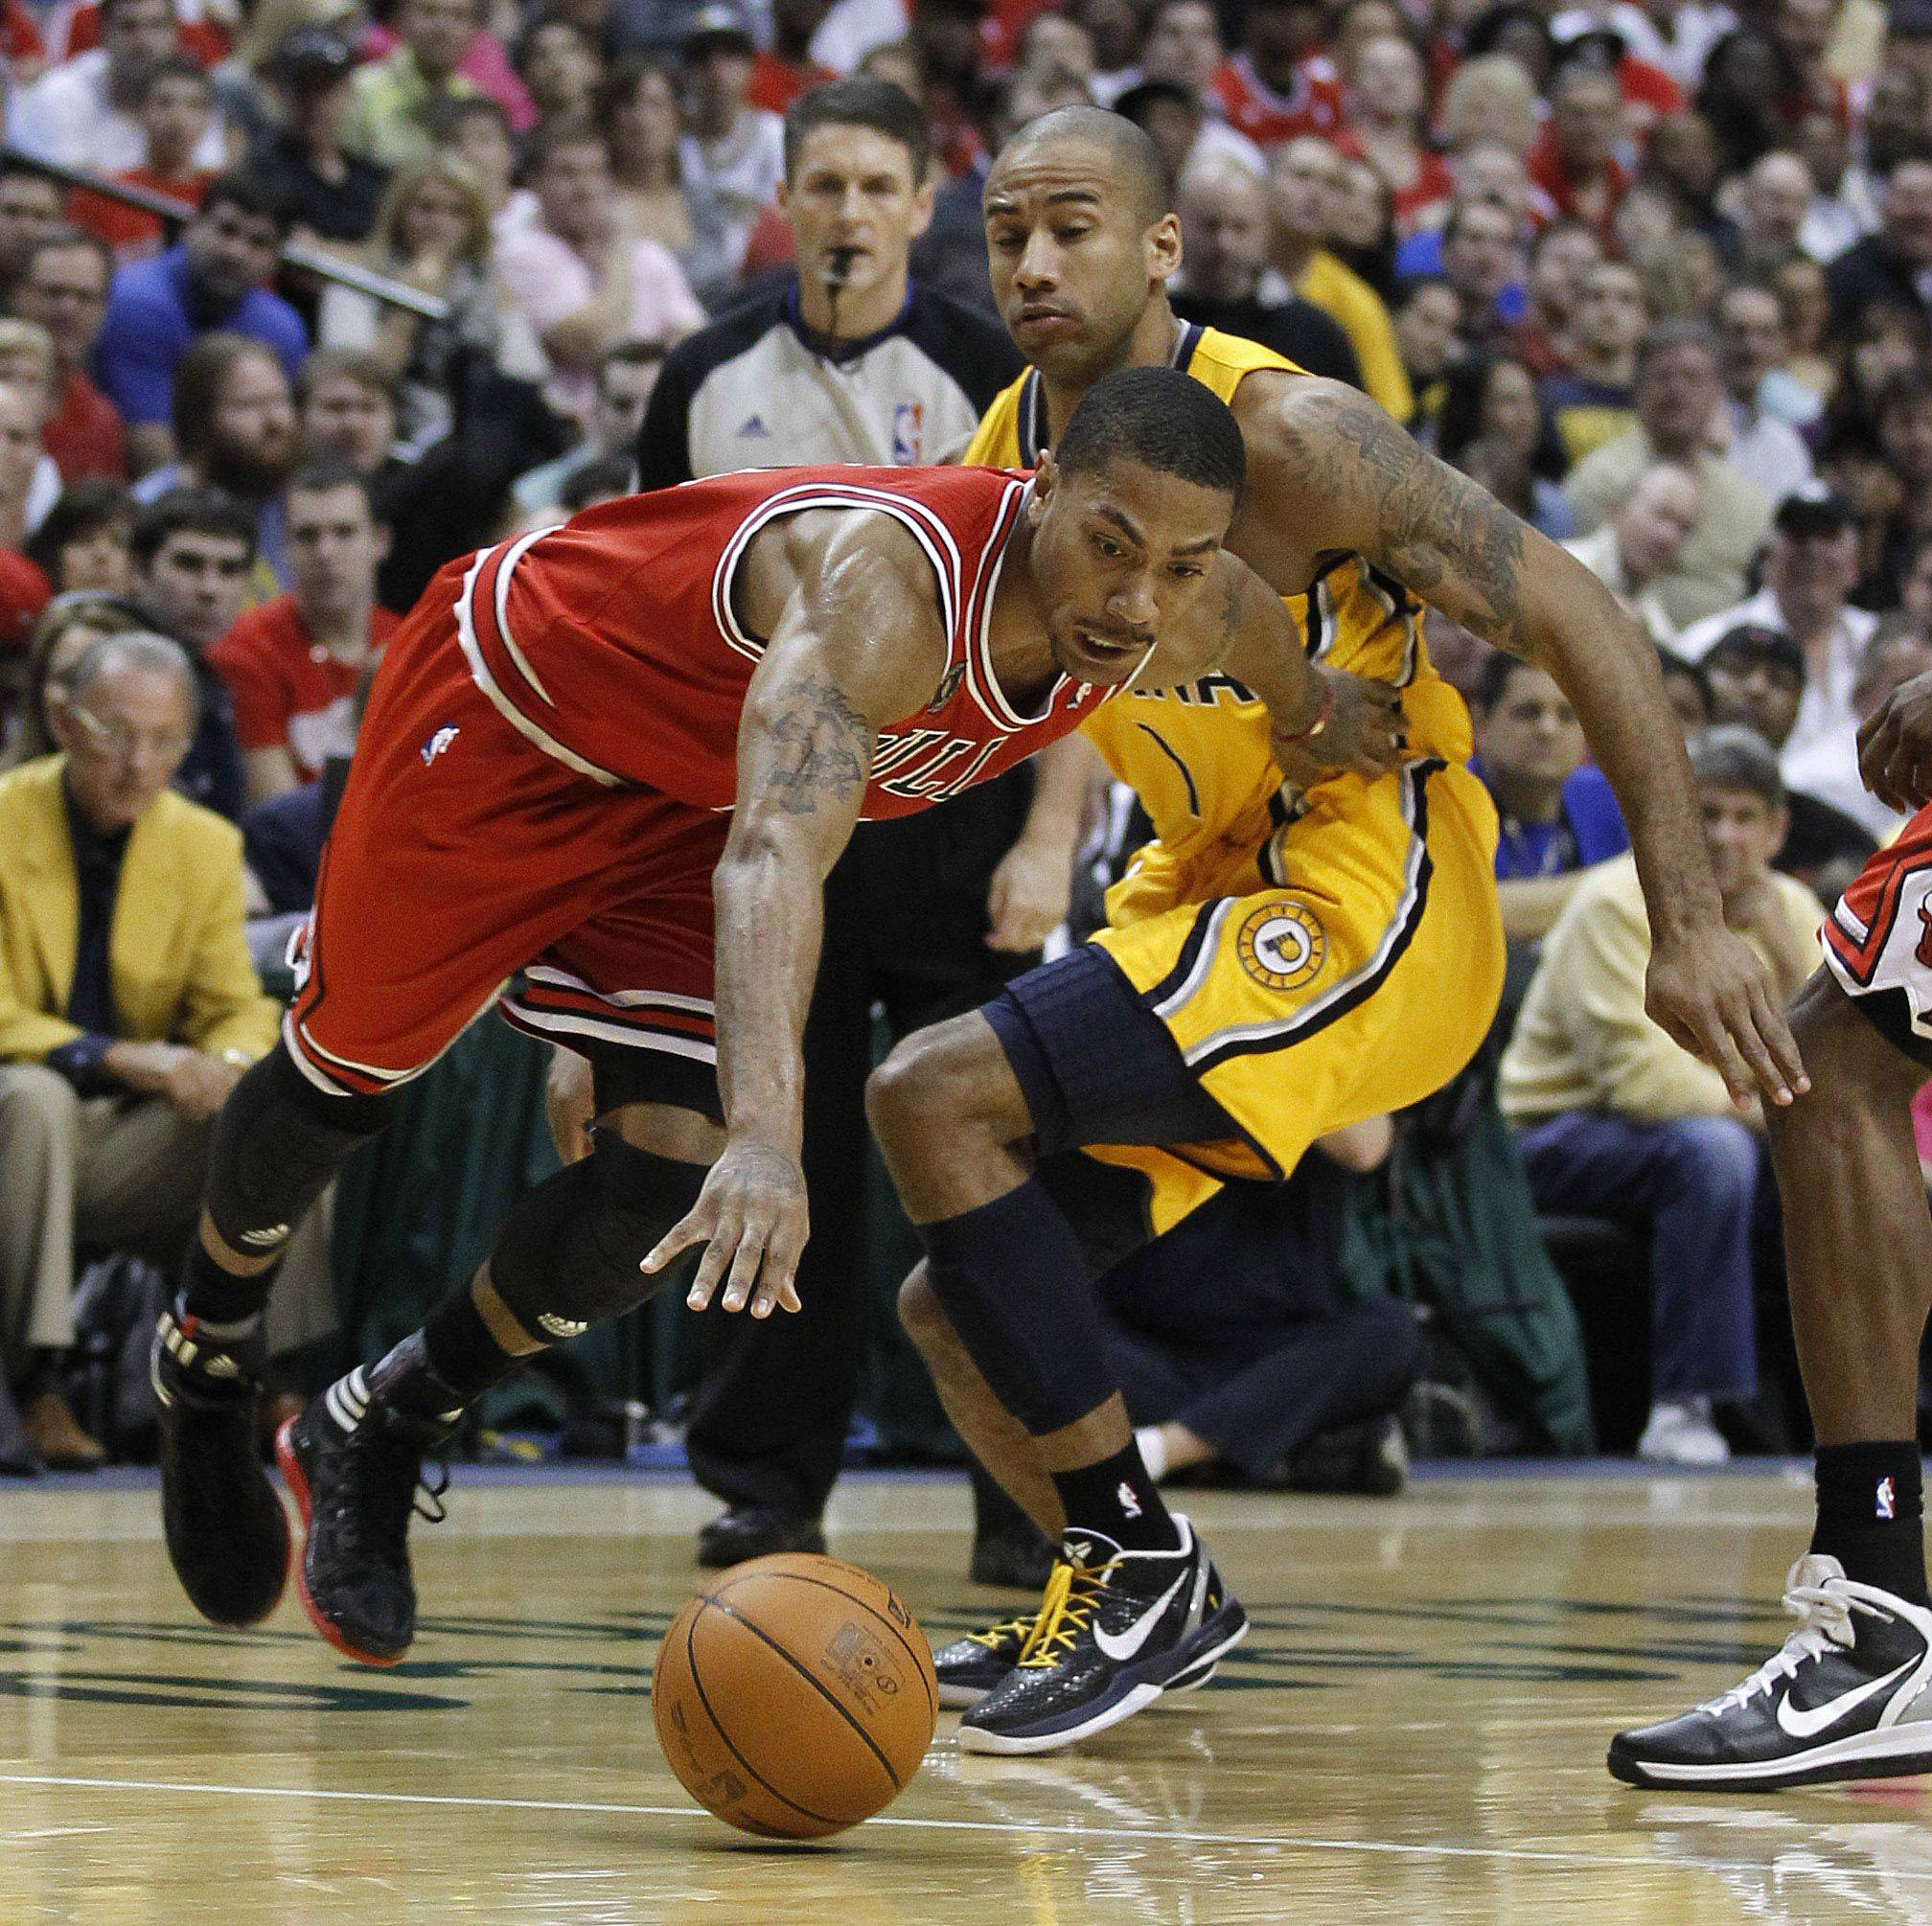 Derrick Rose drives past Indiana Pacers' Dahntay Jones during Saturday's Game 4. Rose indicated today he will play on Tuesday.